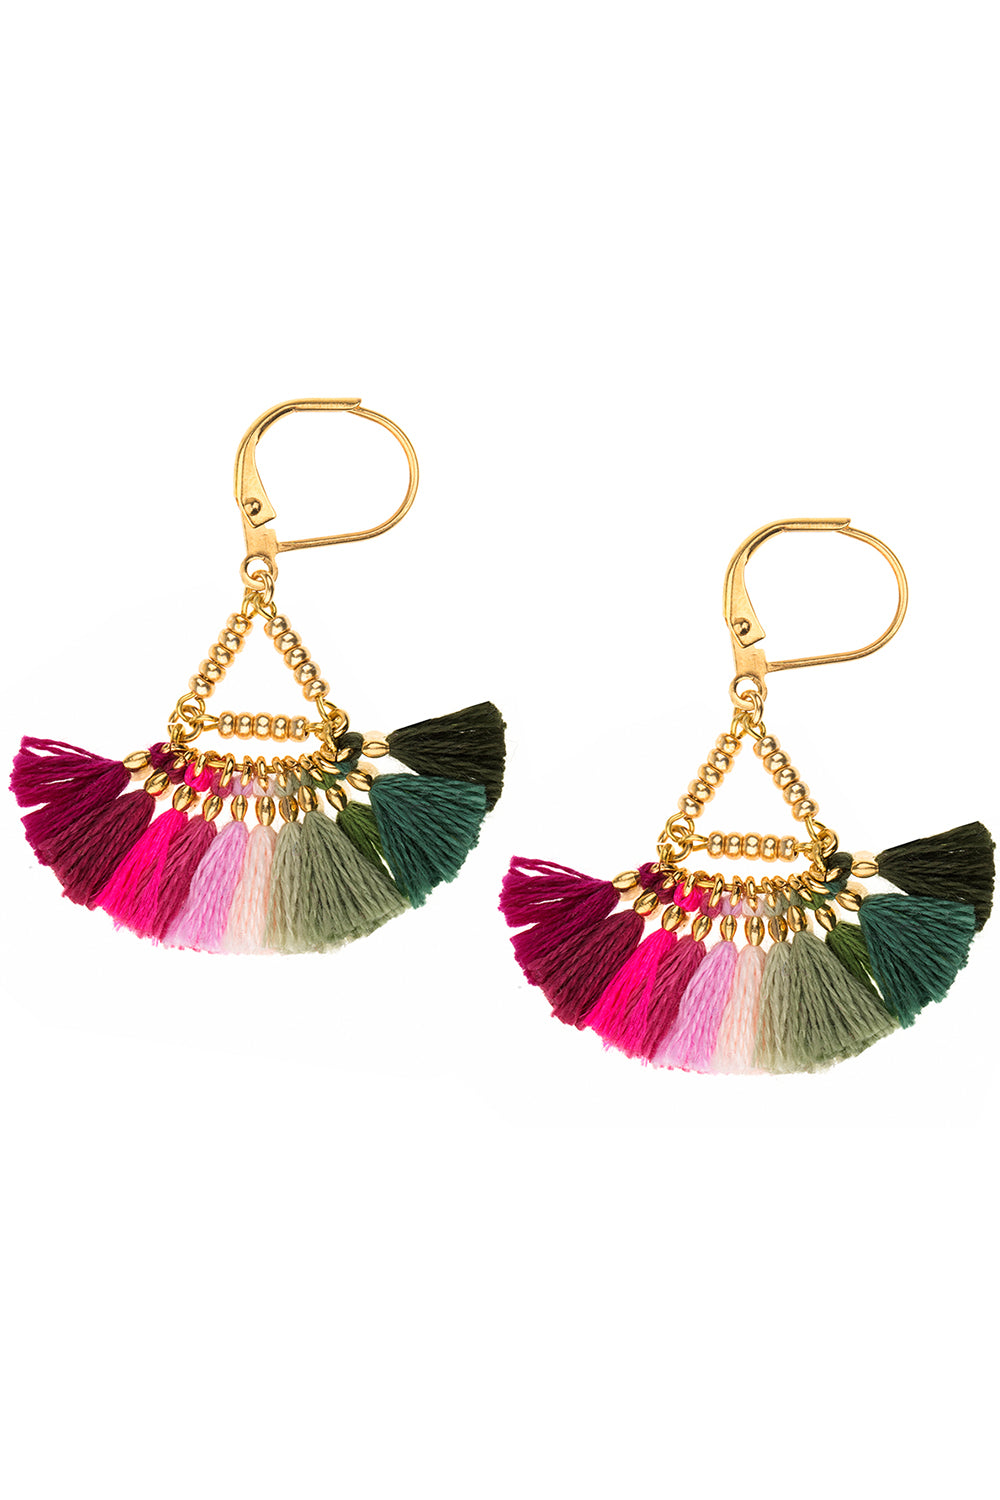 Lilu Earrings in Pink & Green Multicolor